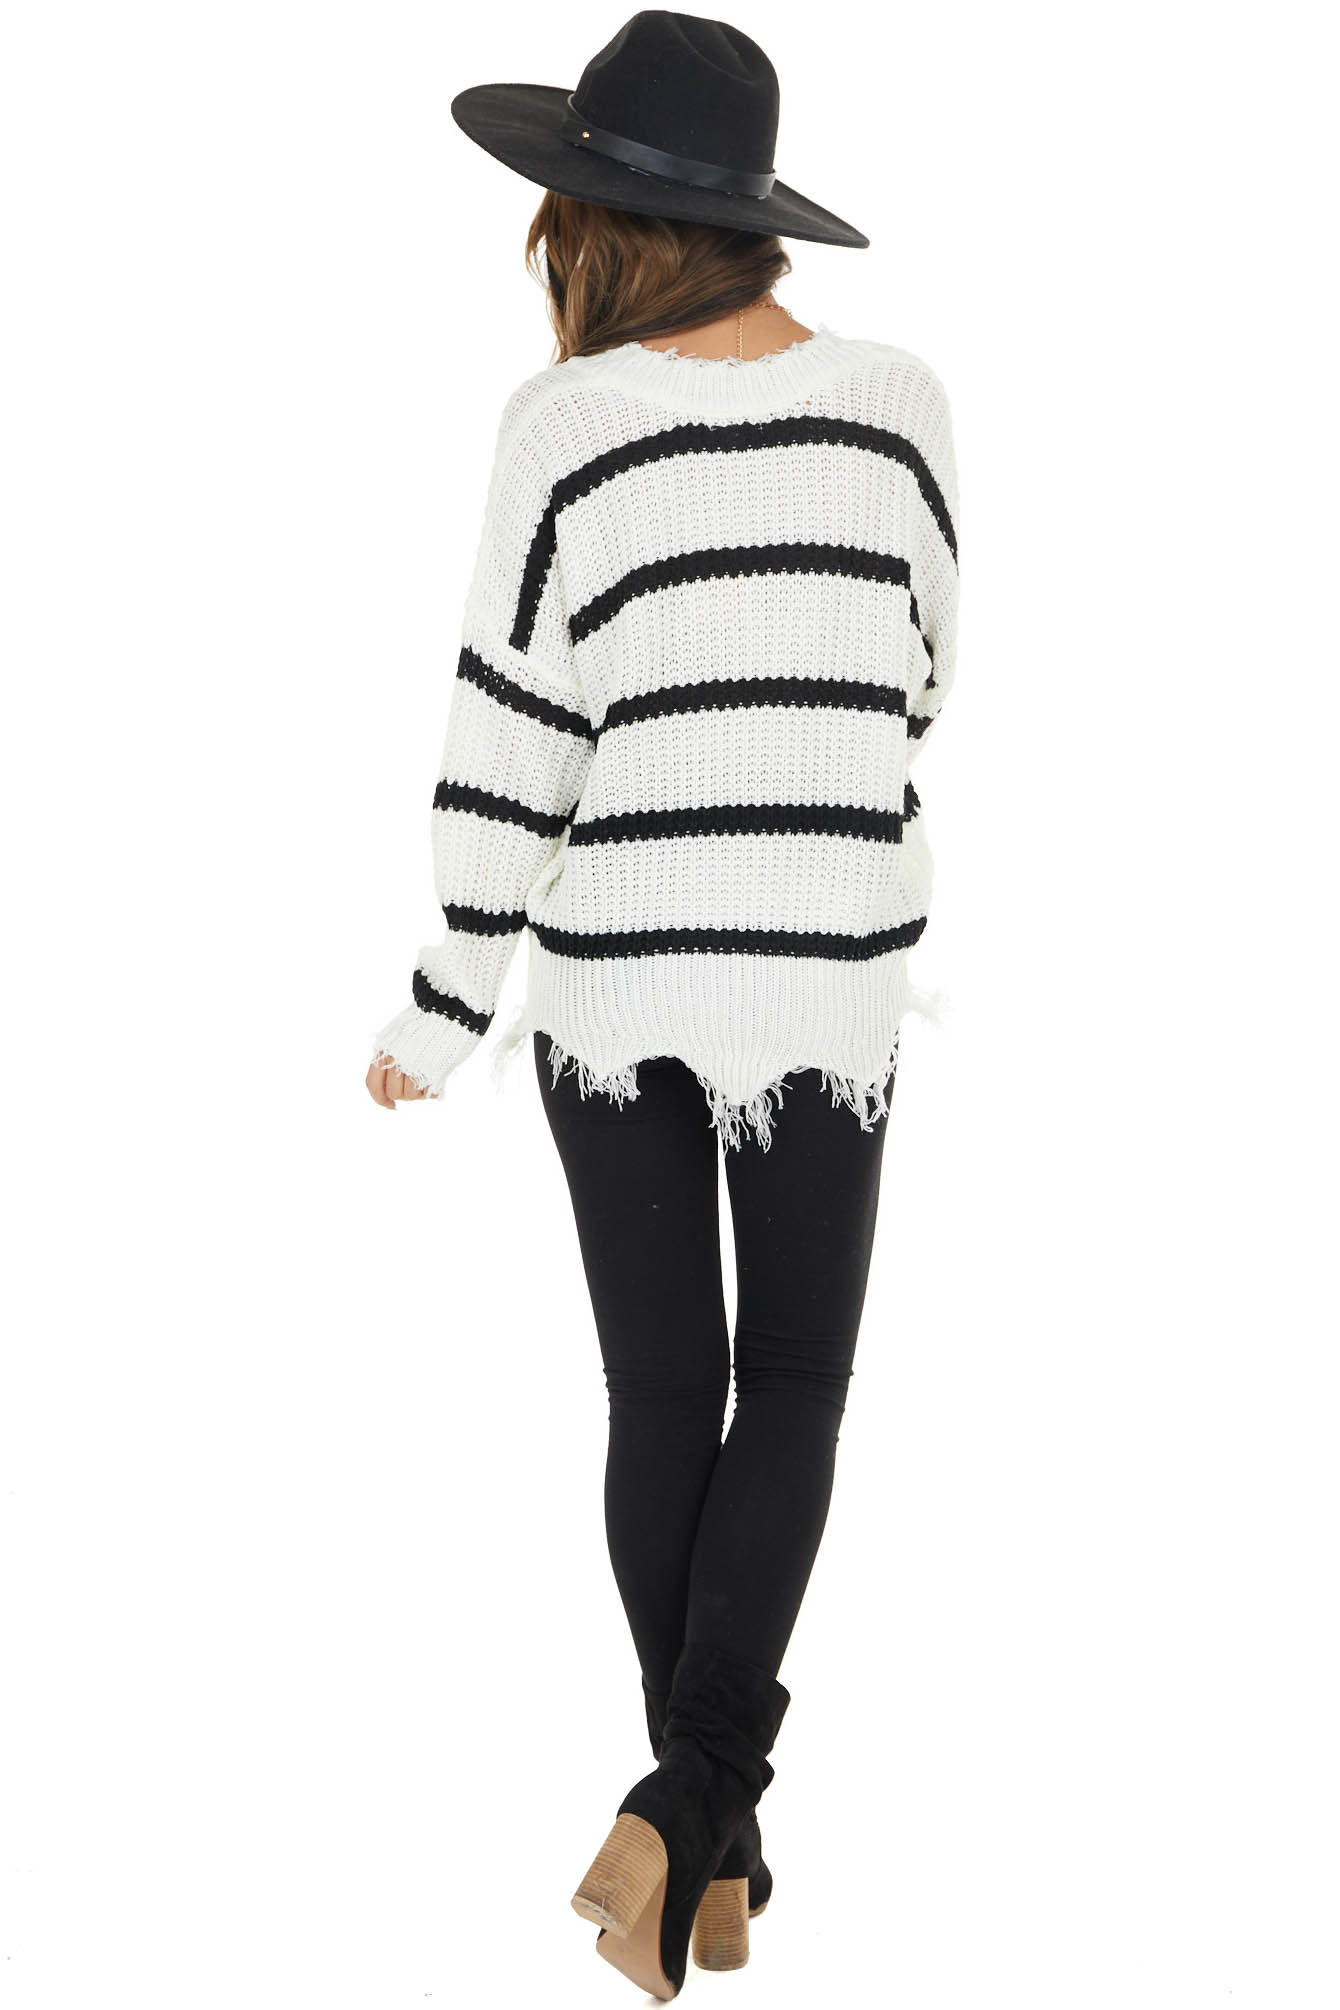 Black and White Striped Loose Knit Lightweight Sweater